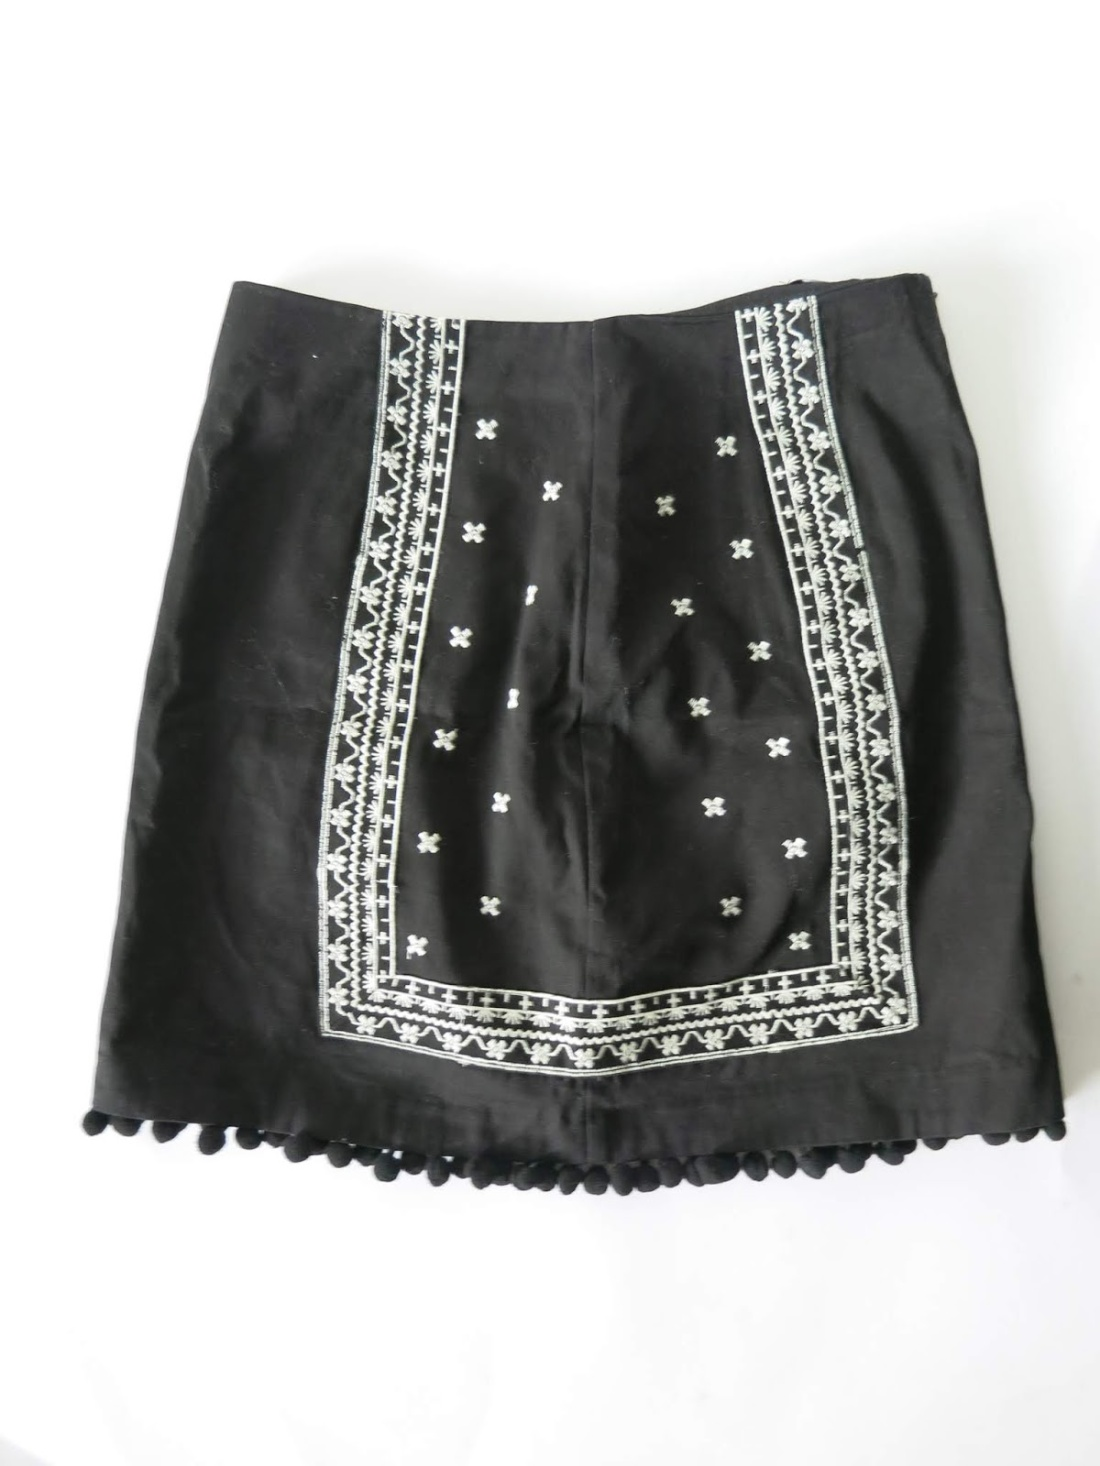 black skirt with pom-pom detailing and white embroidery